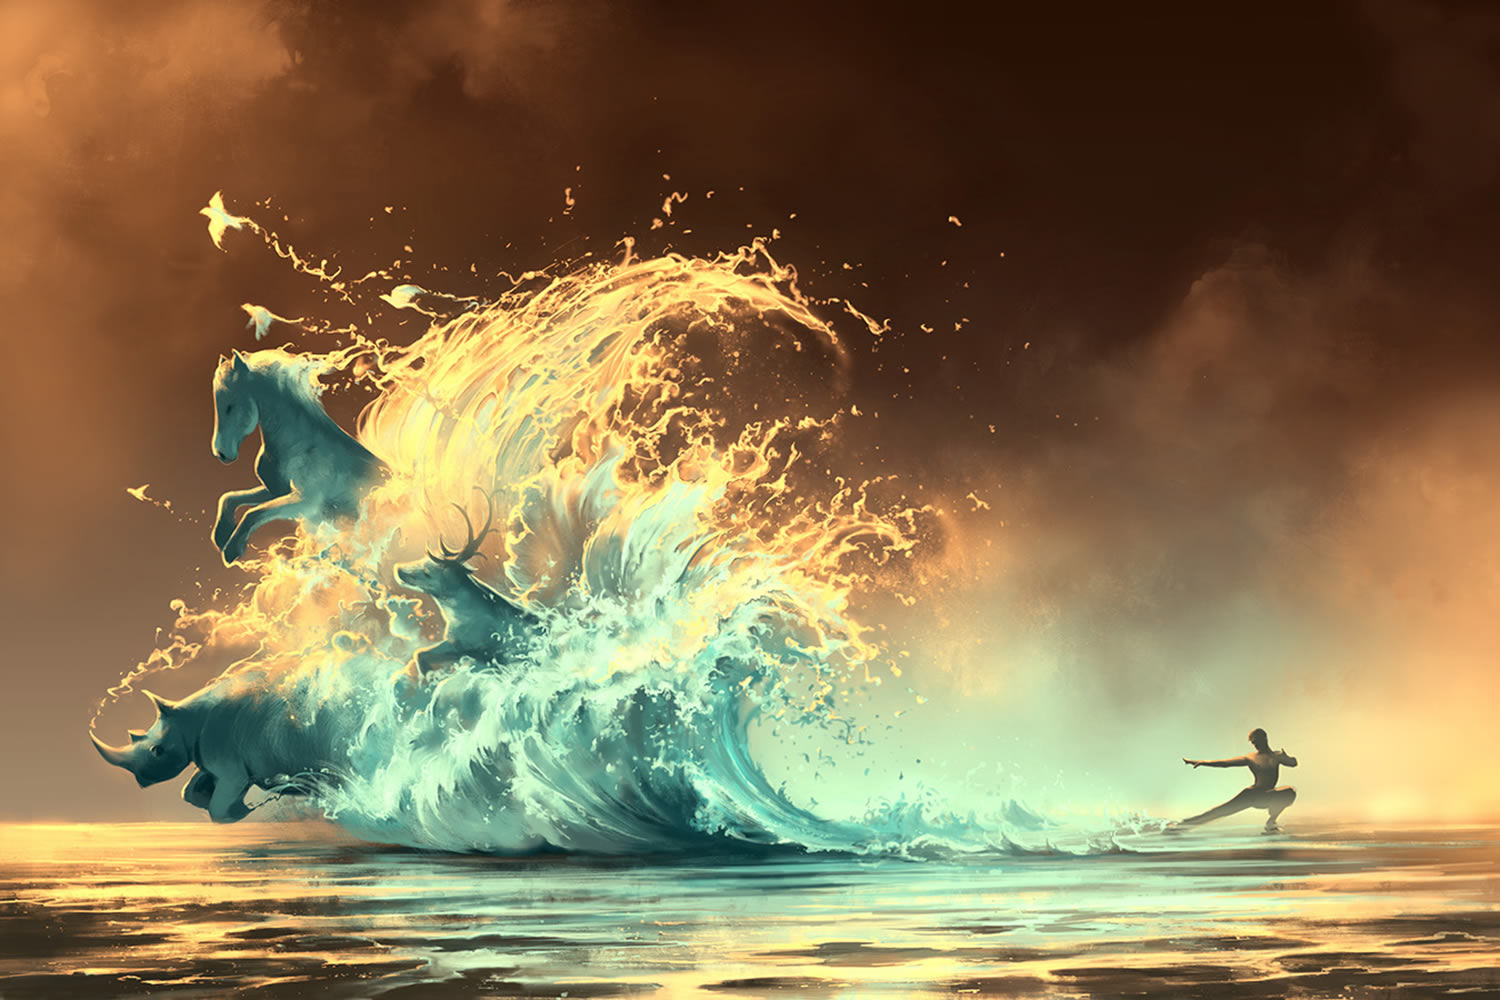 mana tide, digital art by aquasixio